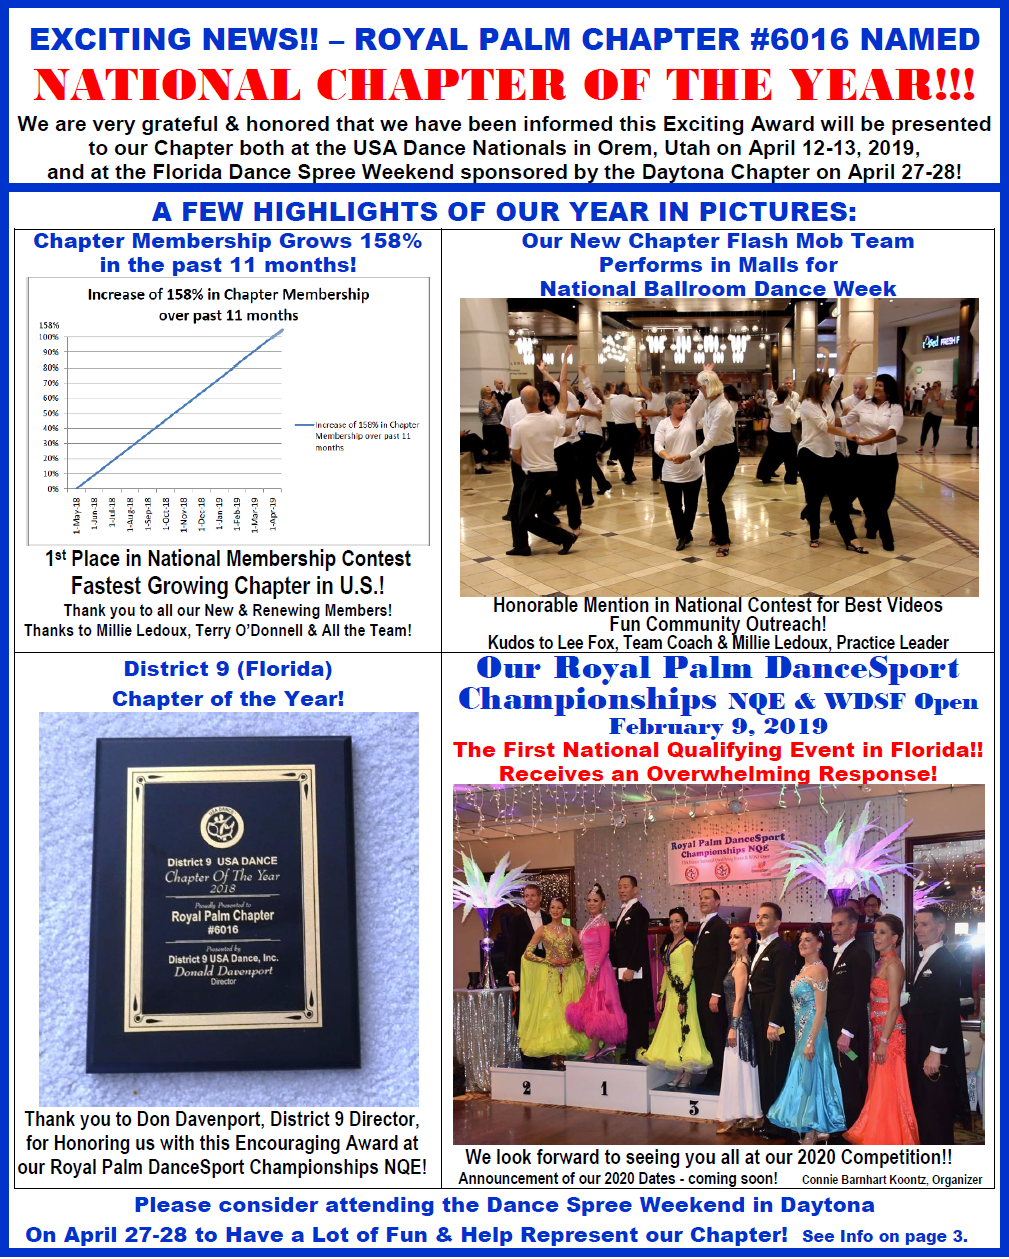 USA Dance, Royal Palm Chapter # 6016 Newsletter - April, 2019